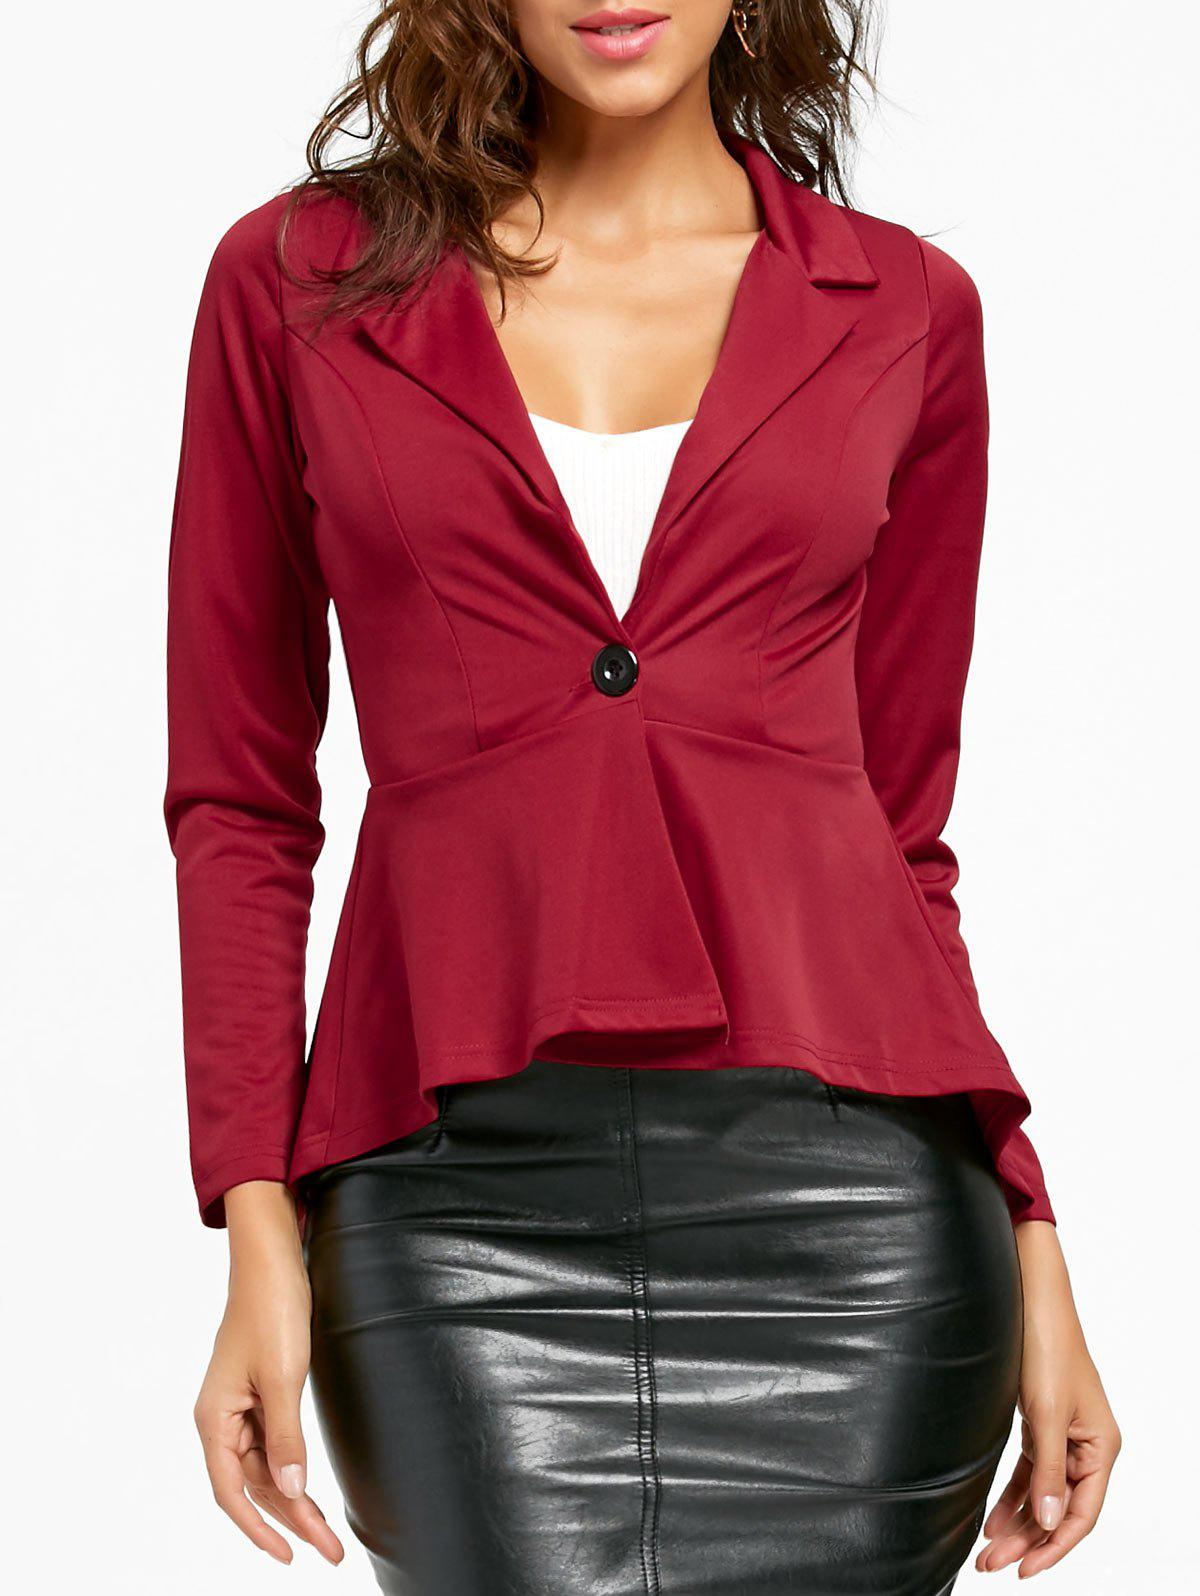 Flounce High Low One Button Blazer - Rouge vineux M